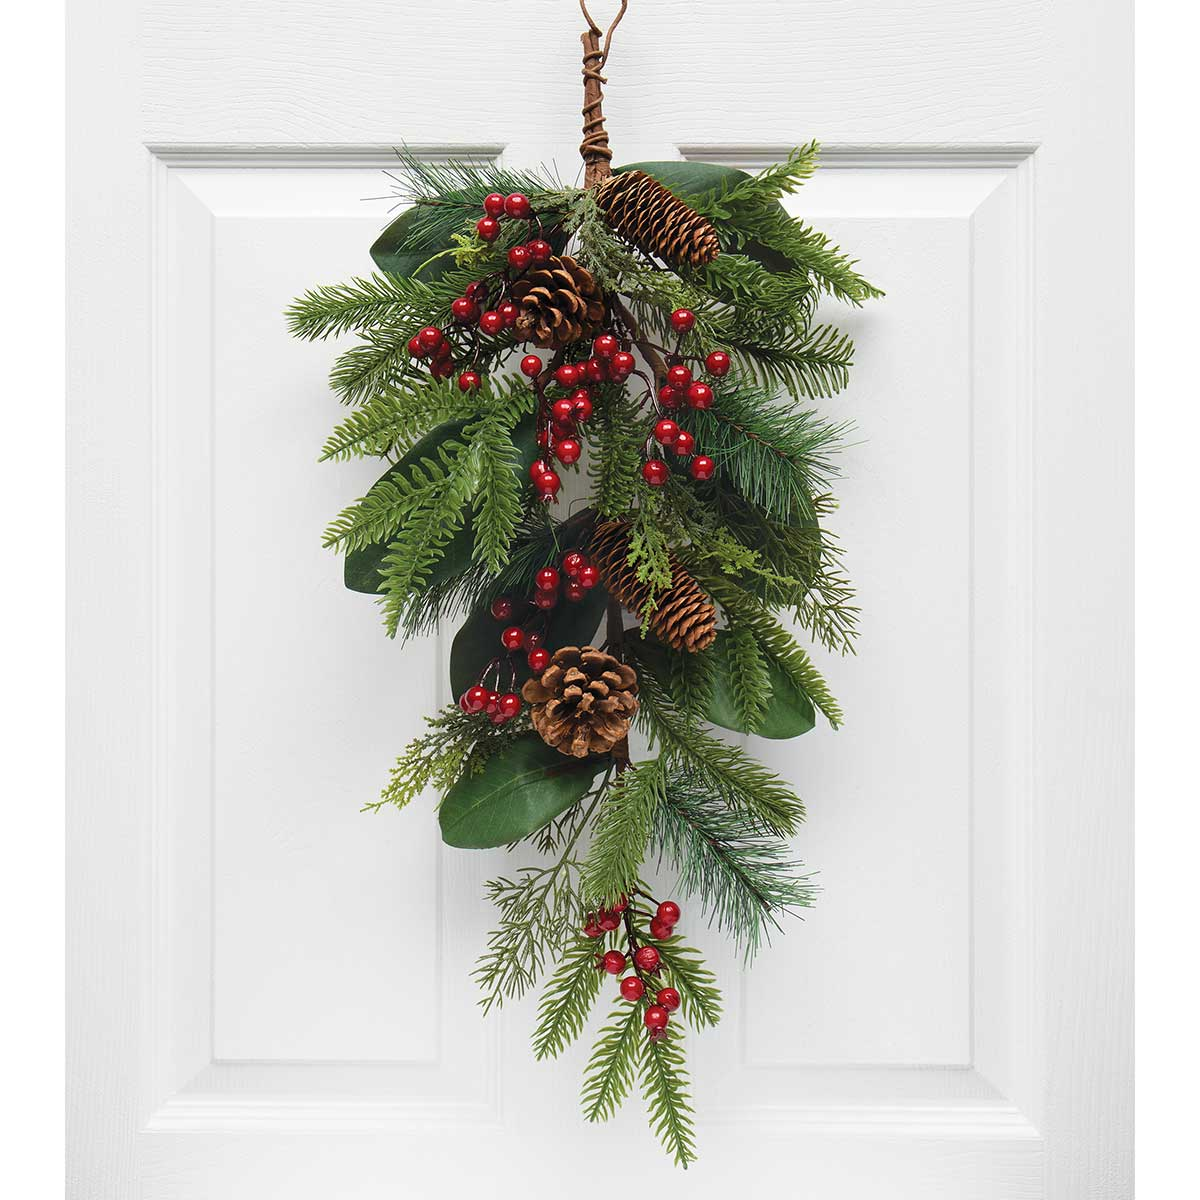 SOUTHERN HOLIDAY PINE BOUGH WITH MAGNOLIA LEAVES, RED